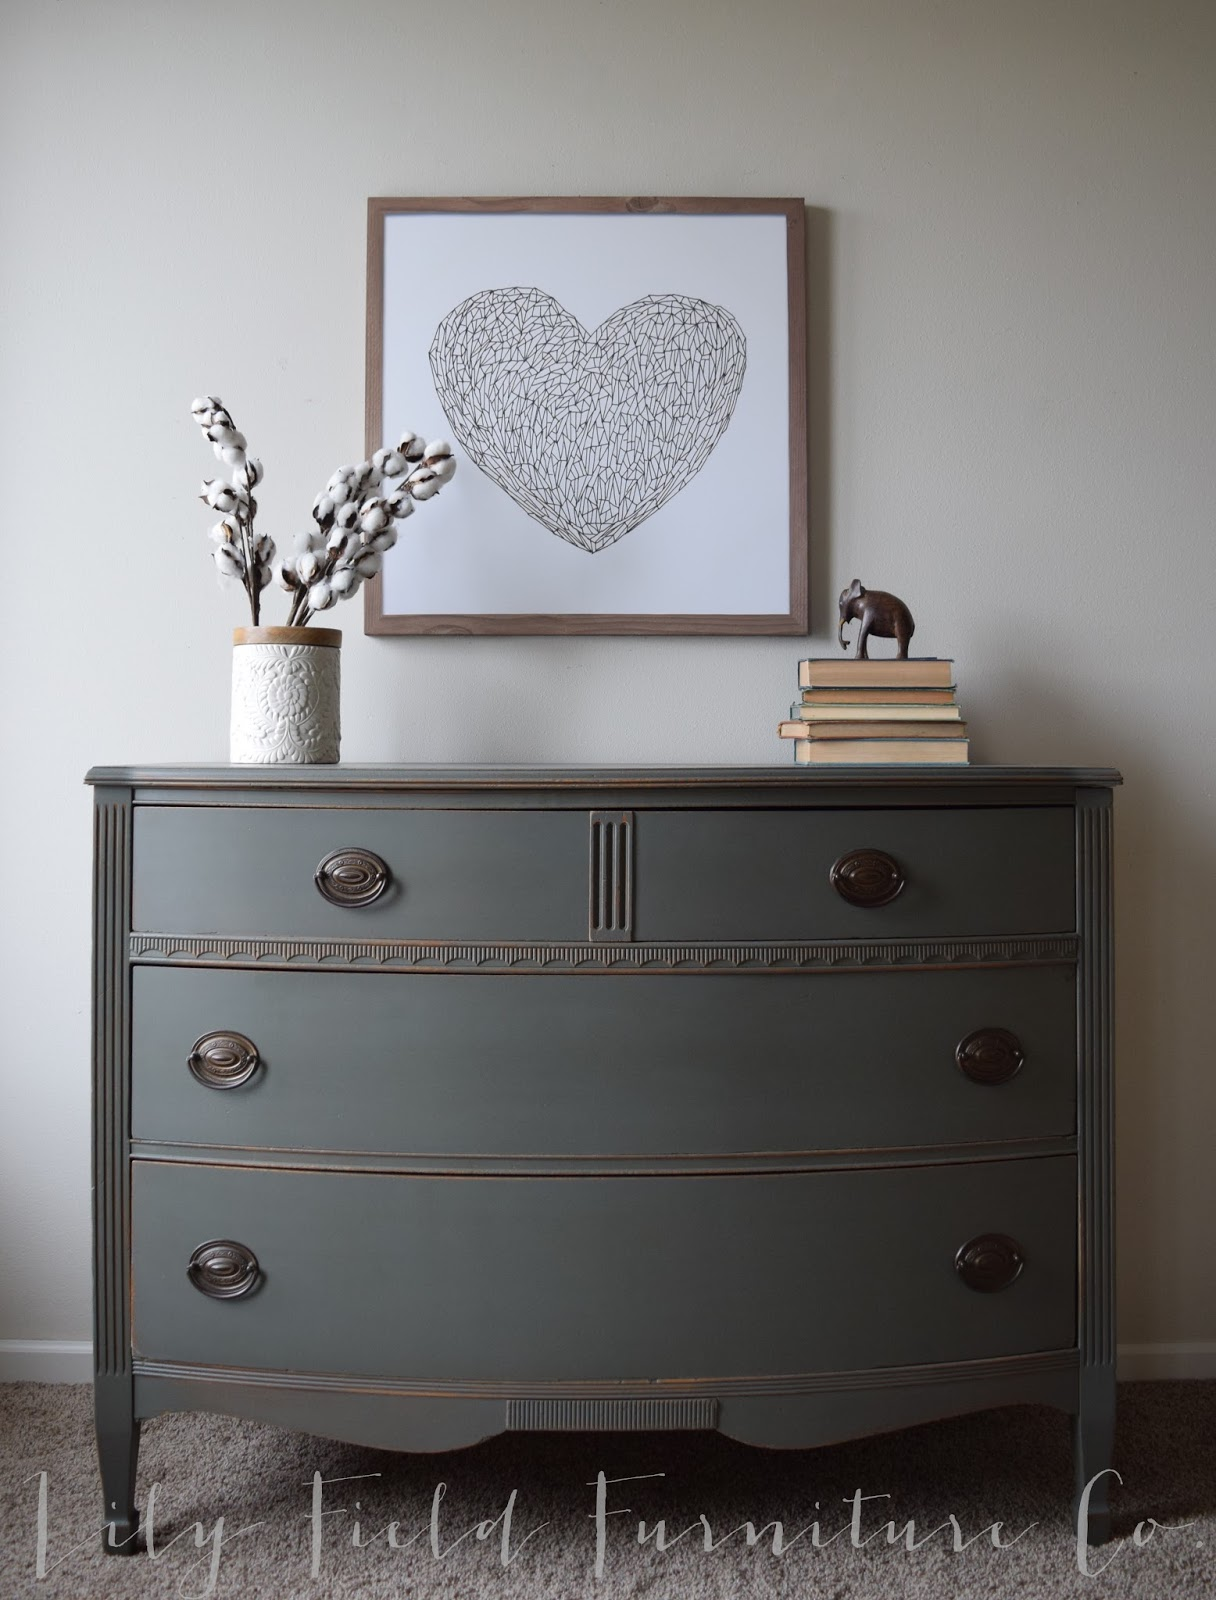 Sherwin williams cast iron dresser color matched by Best color to paint dresser